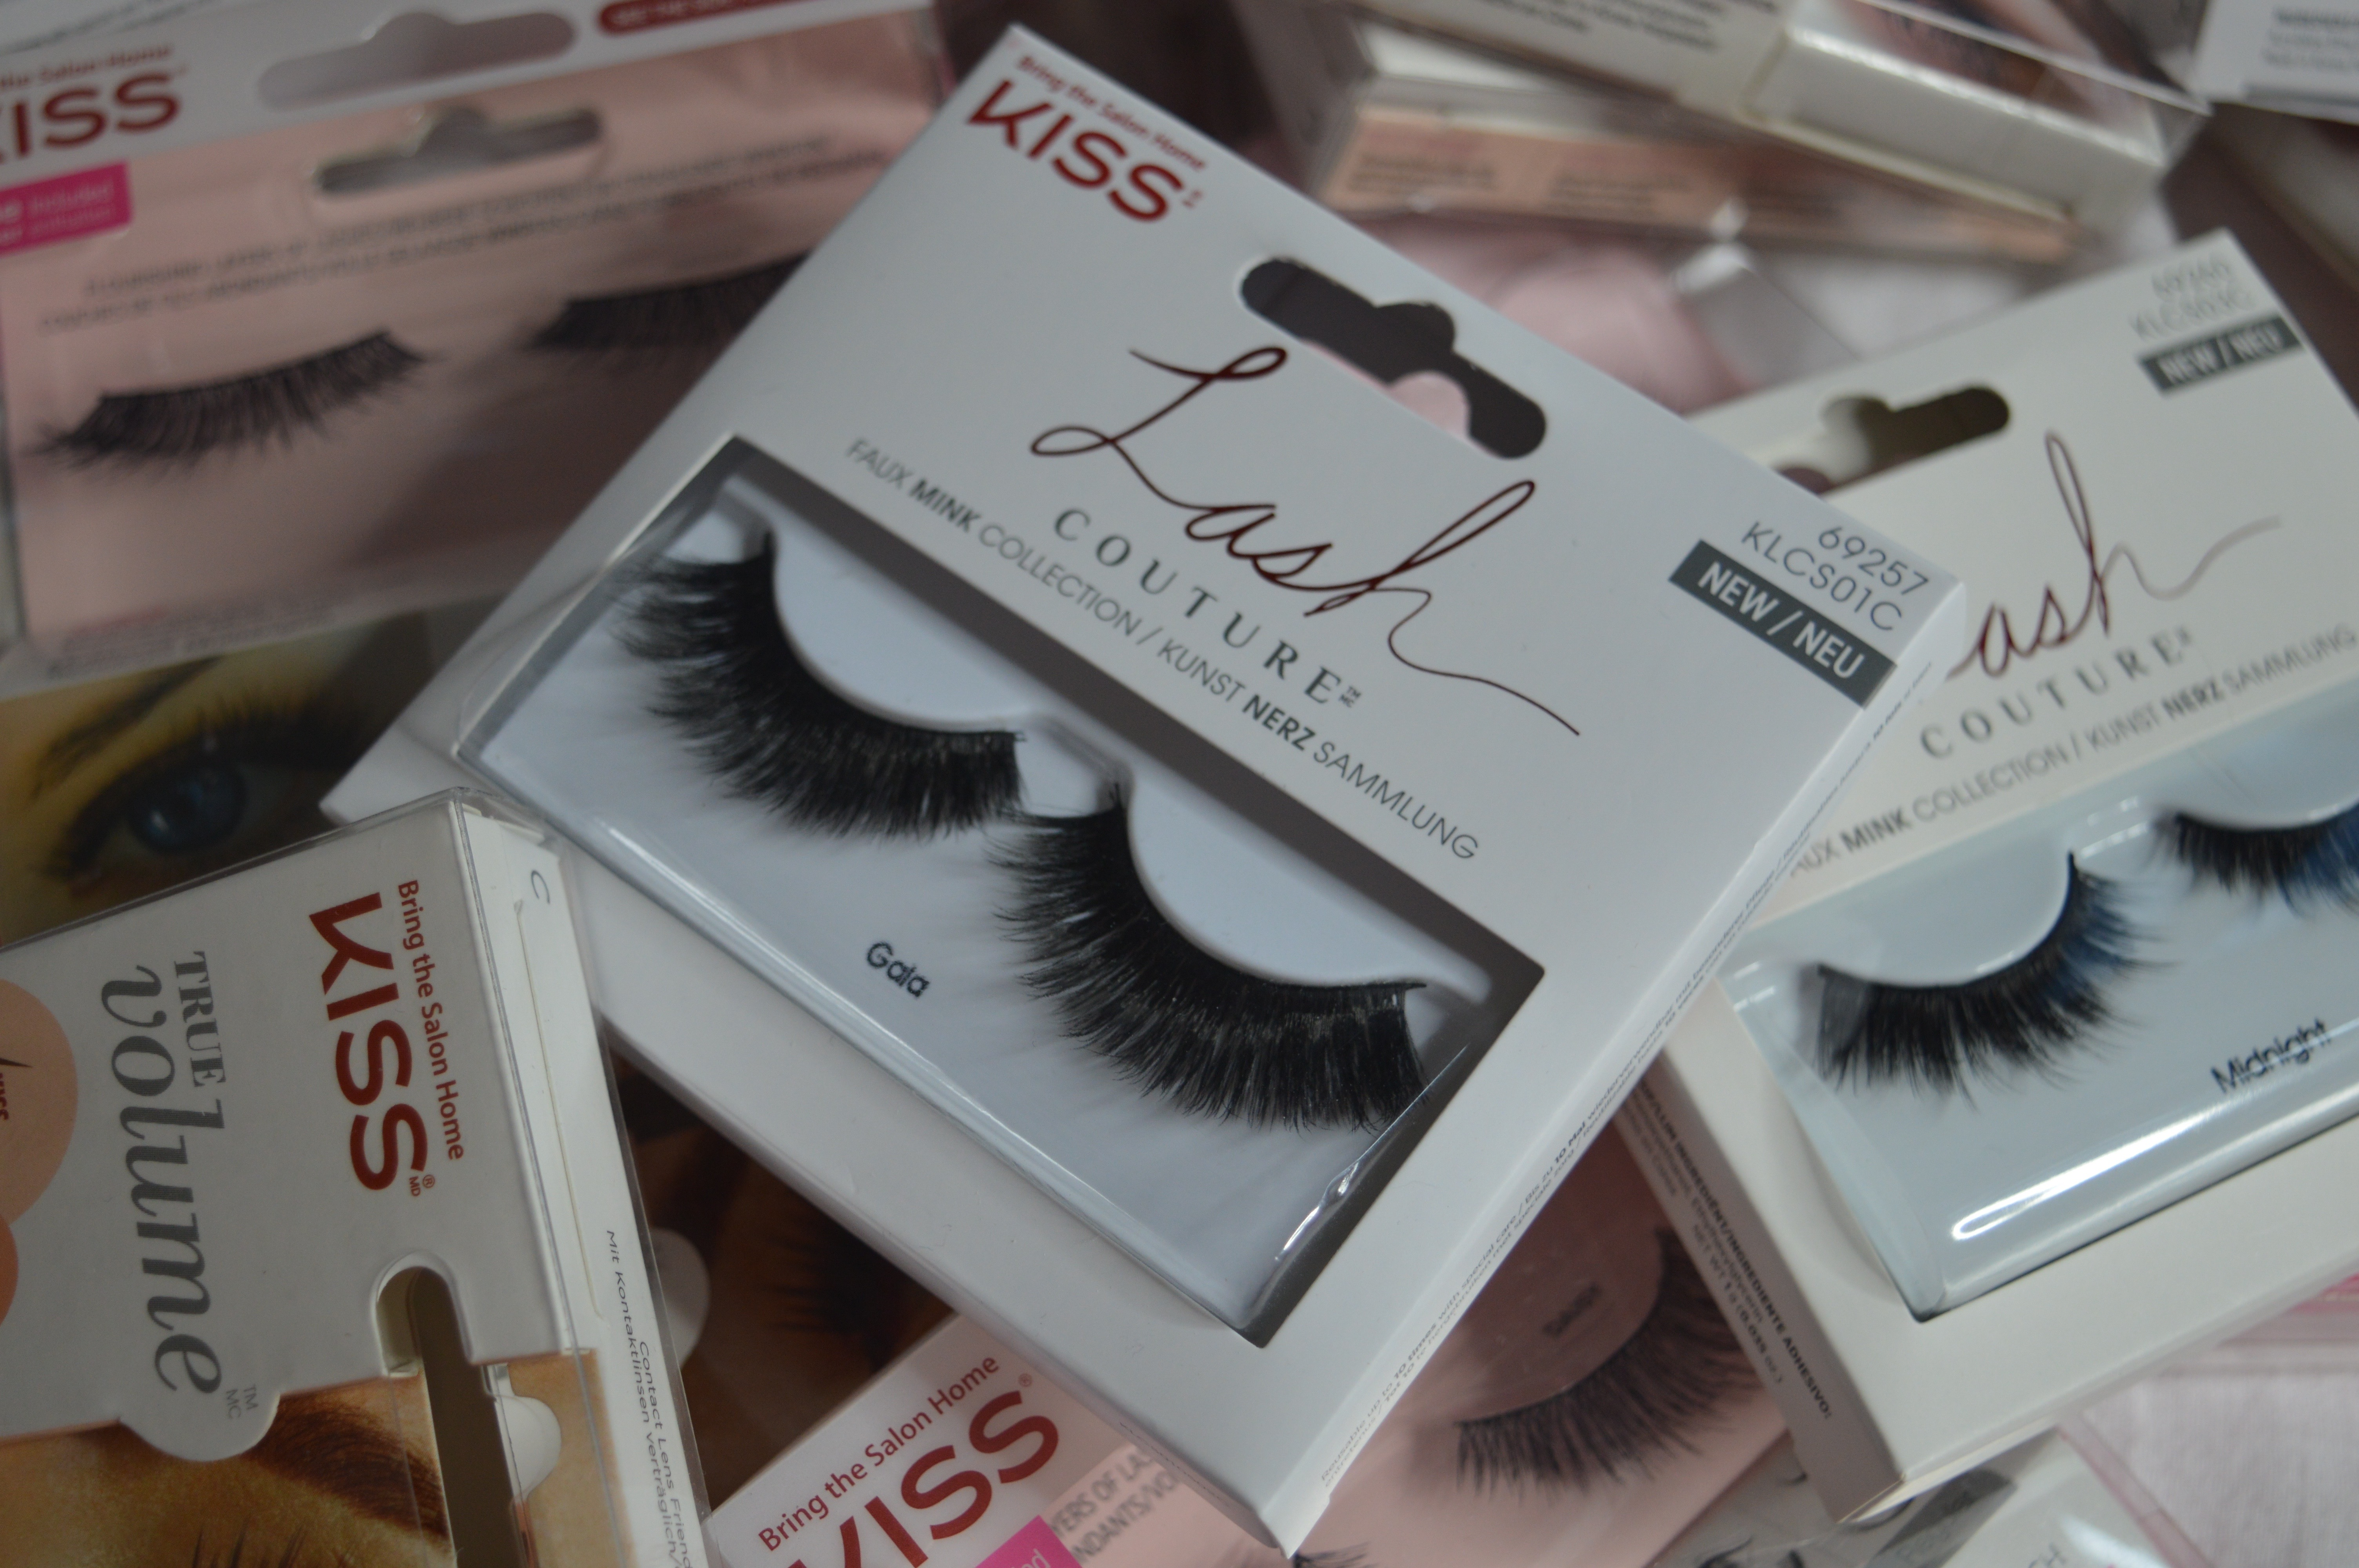 KISS nails & lashes beauty products elle blonde luxury lifestyle blog